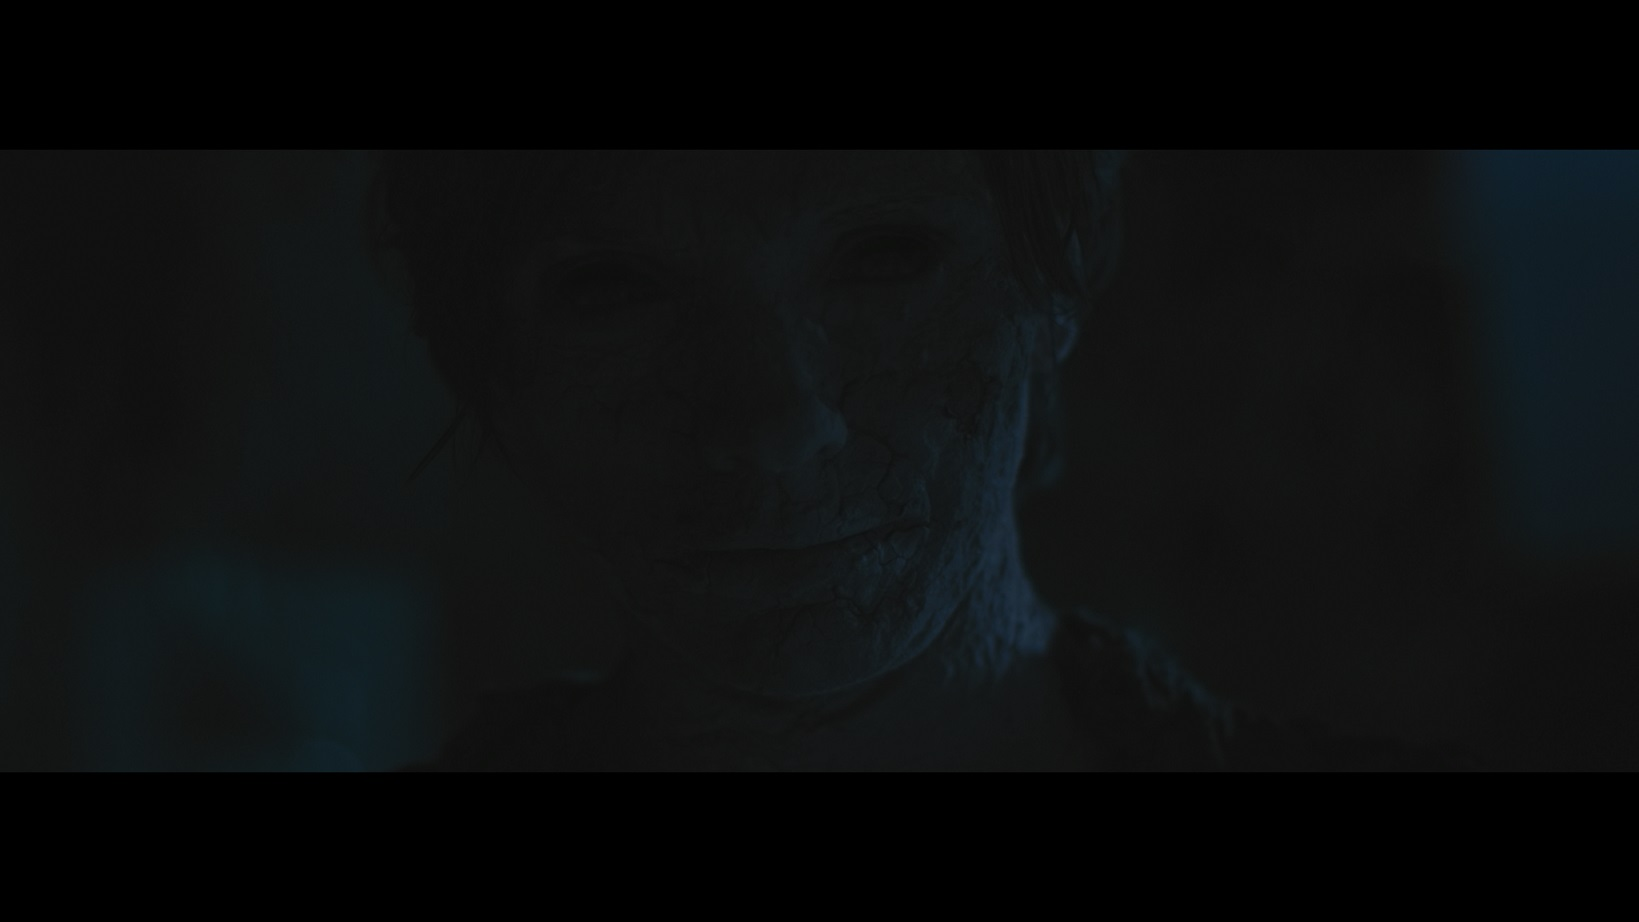 Echoes - Written/directed by Nils Timm